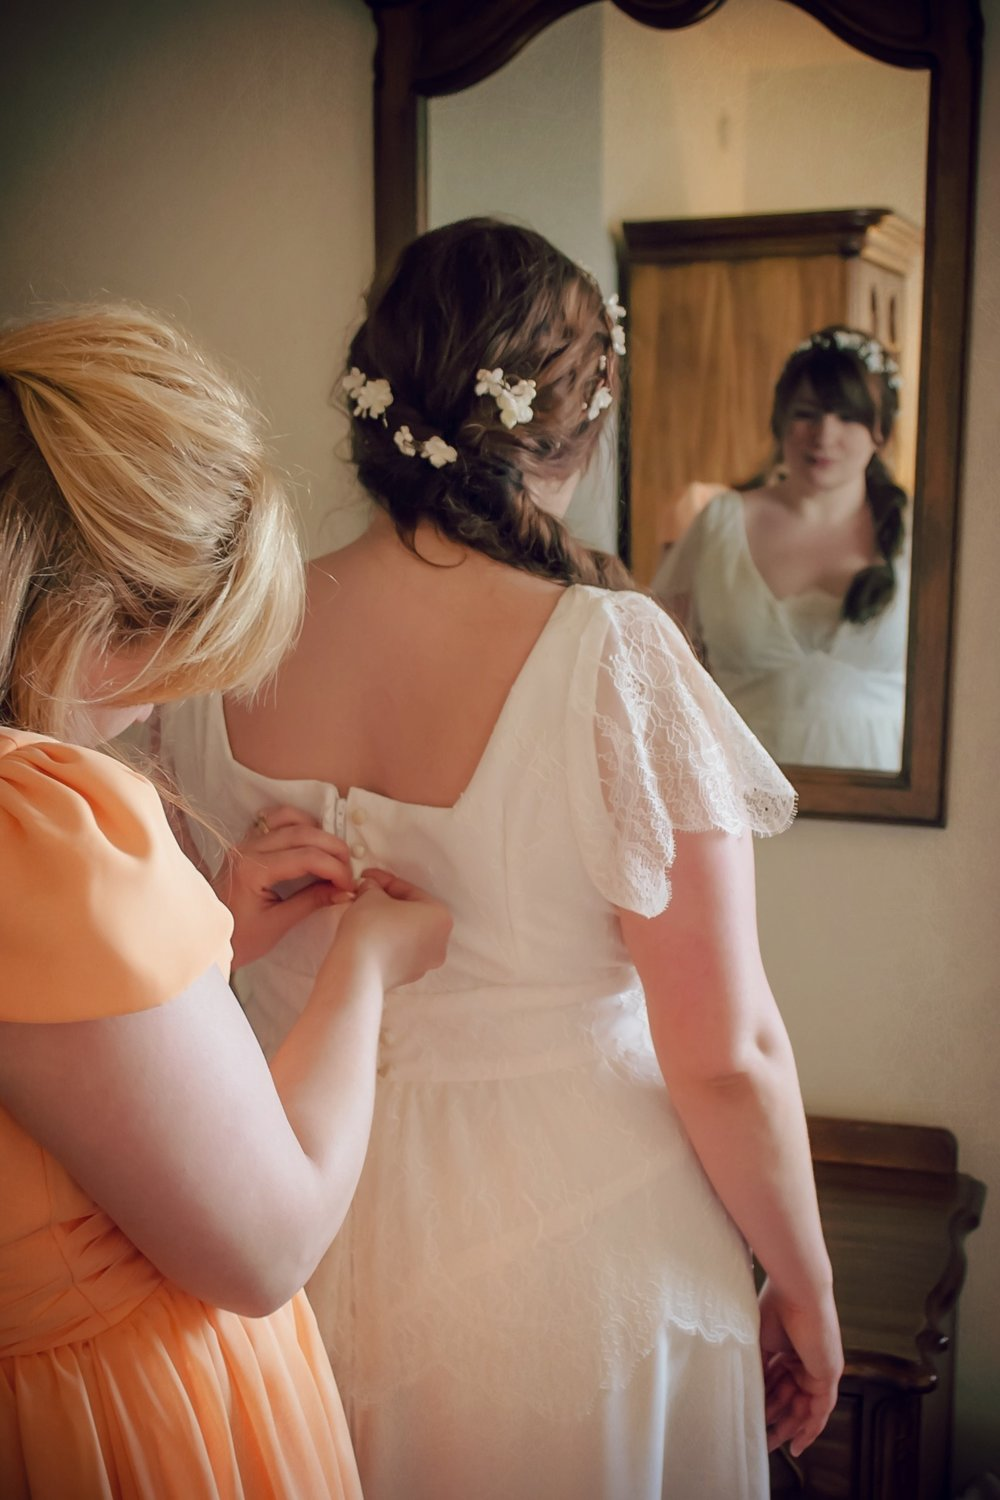 Bride in mirror, with back of dress being buttoned up. Layered lace at the hips adds interest to shape.